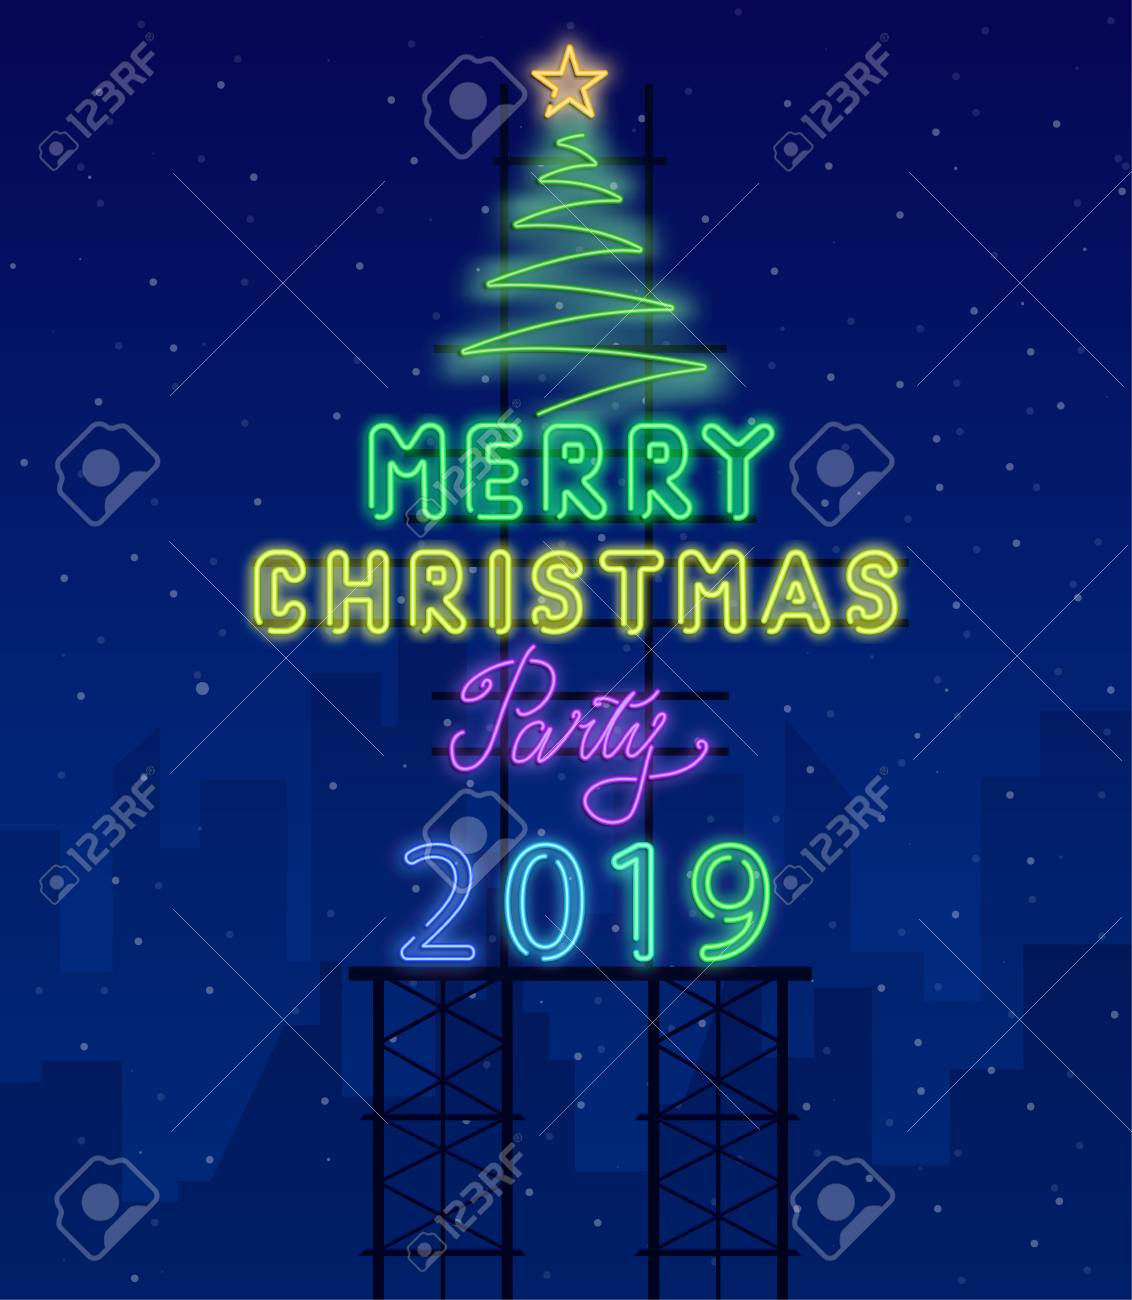 127678775 merry christmas 2019 party neon luminous poster with christmas tree vector background